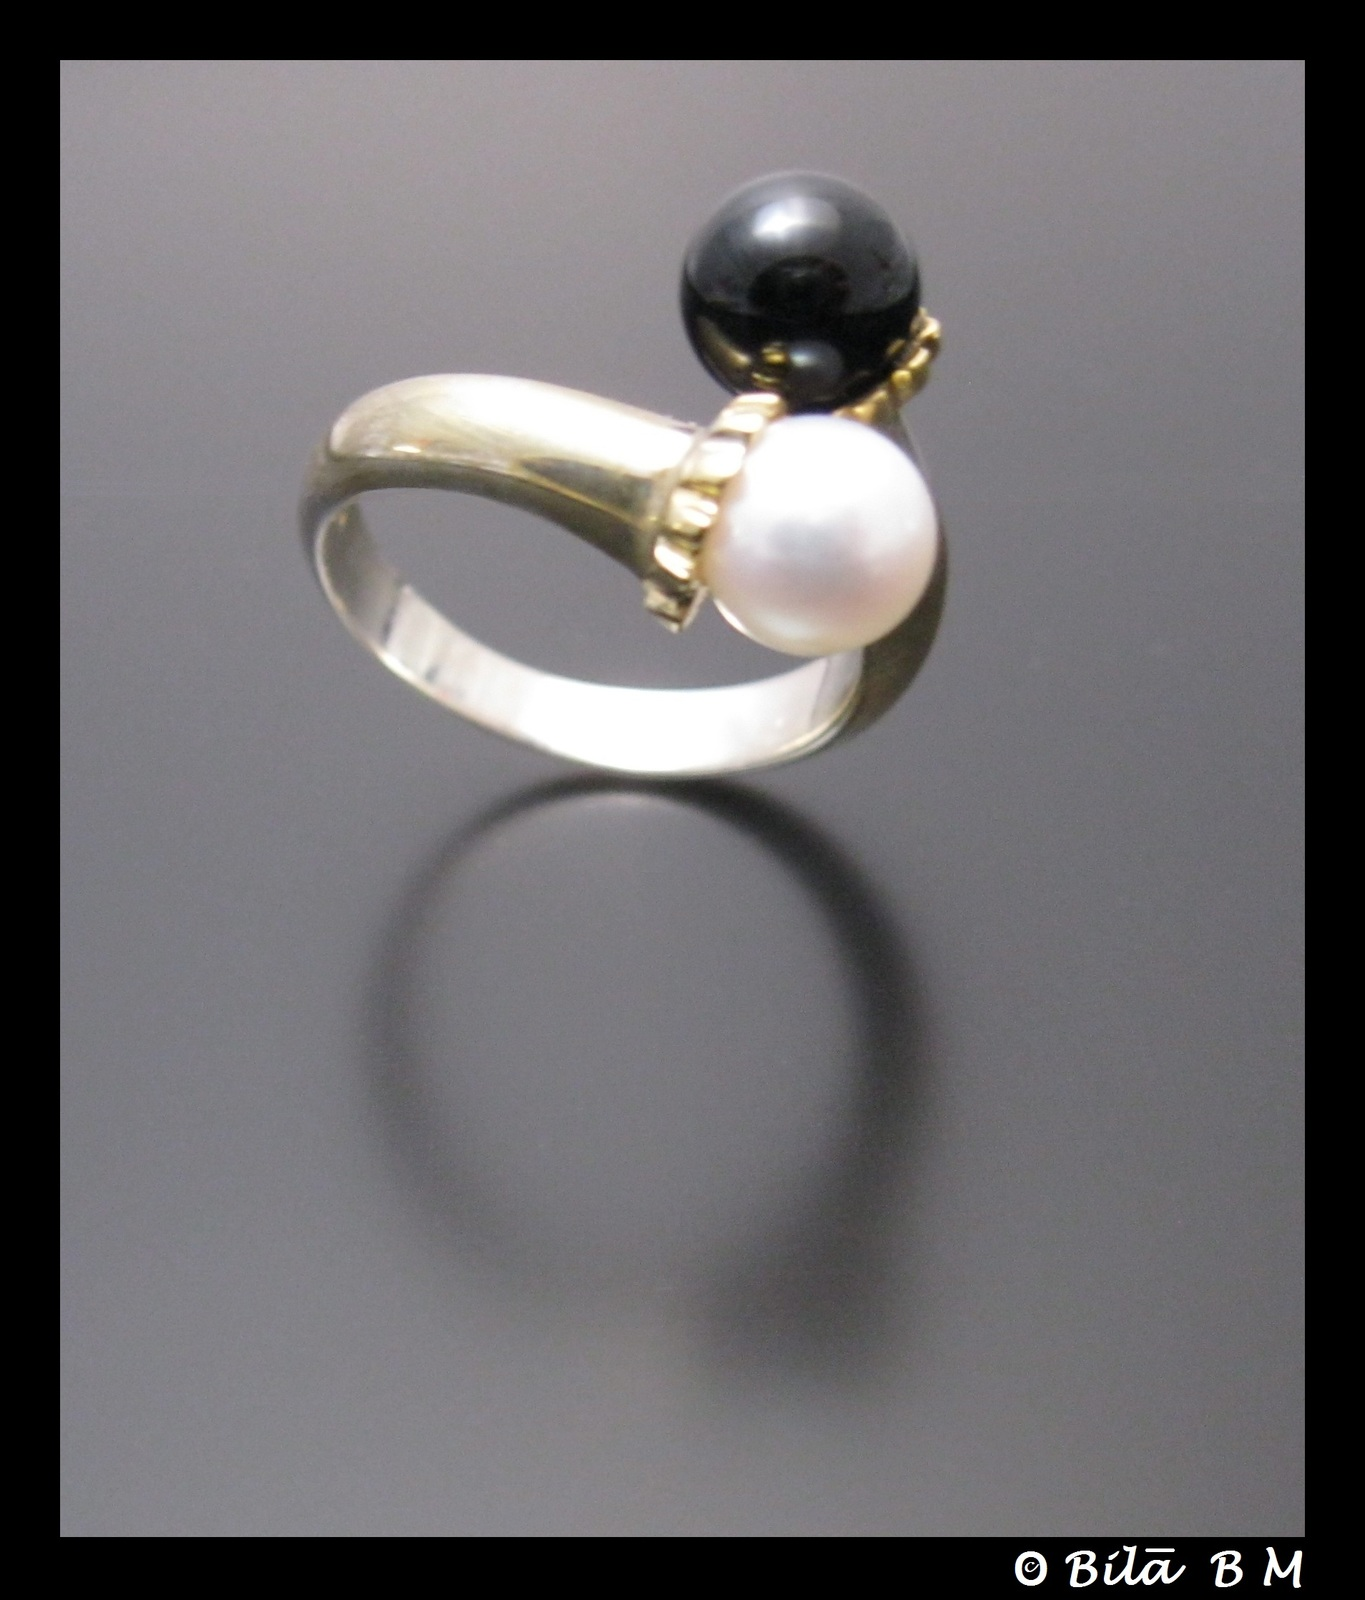 TIFFANY & CO Black and White PEARL Bypass RING in Sterling Silver with 18K Gold